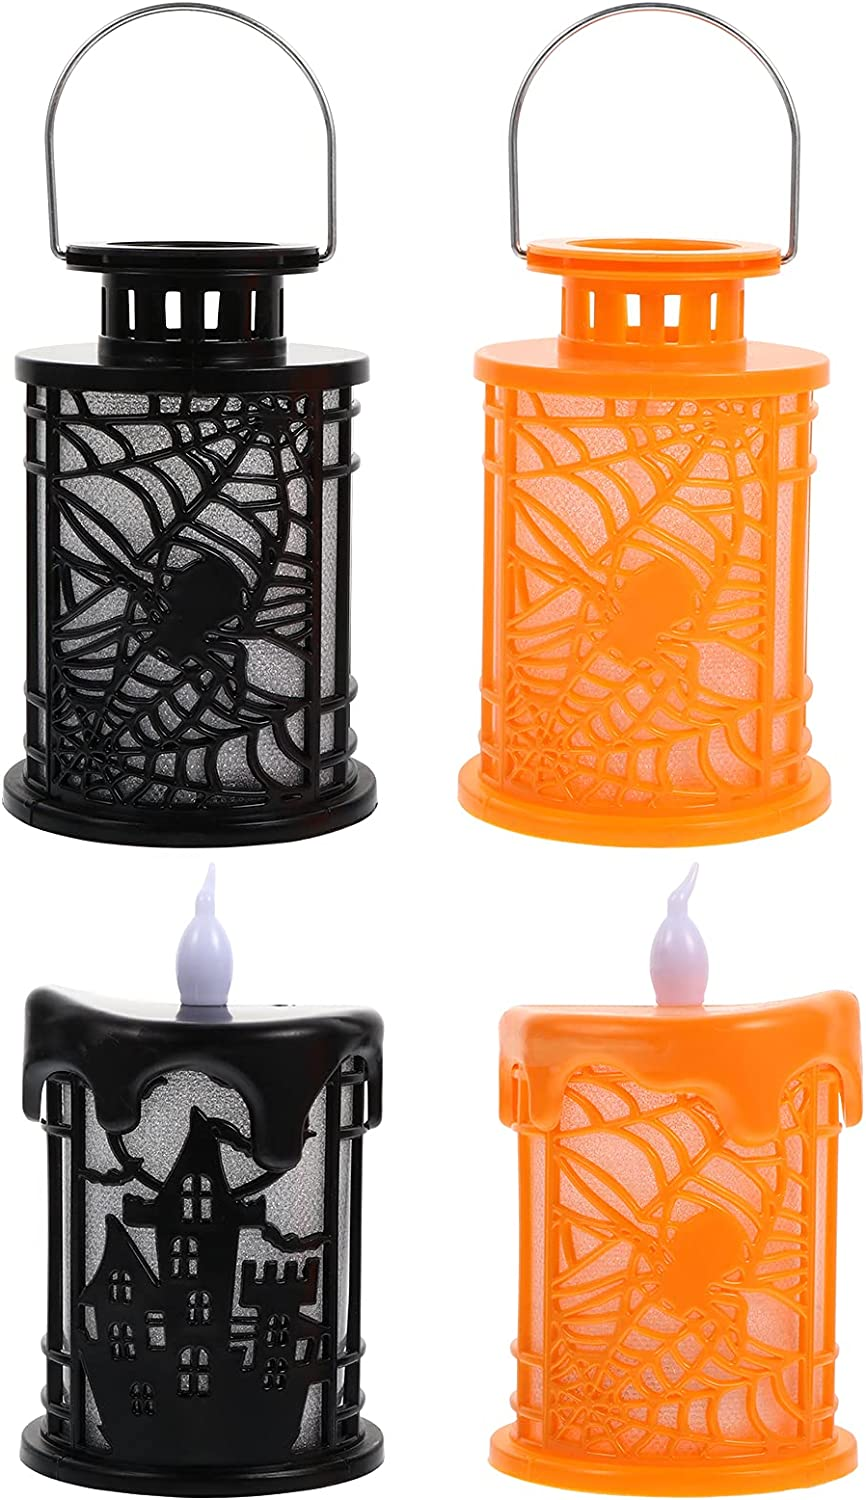 BESPORTBLE 4pcs Halloween LED Lamps Lights Candle Animer and price revision Nig Decorative Cheap mail order specialty store